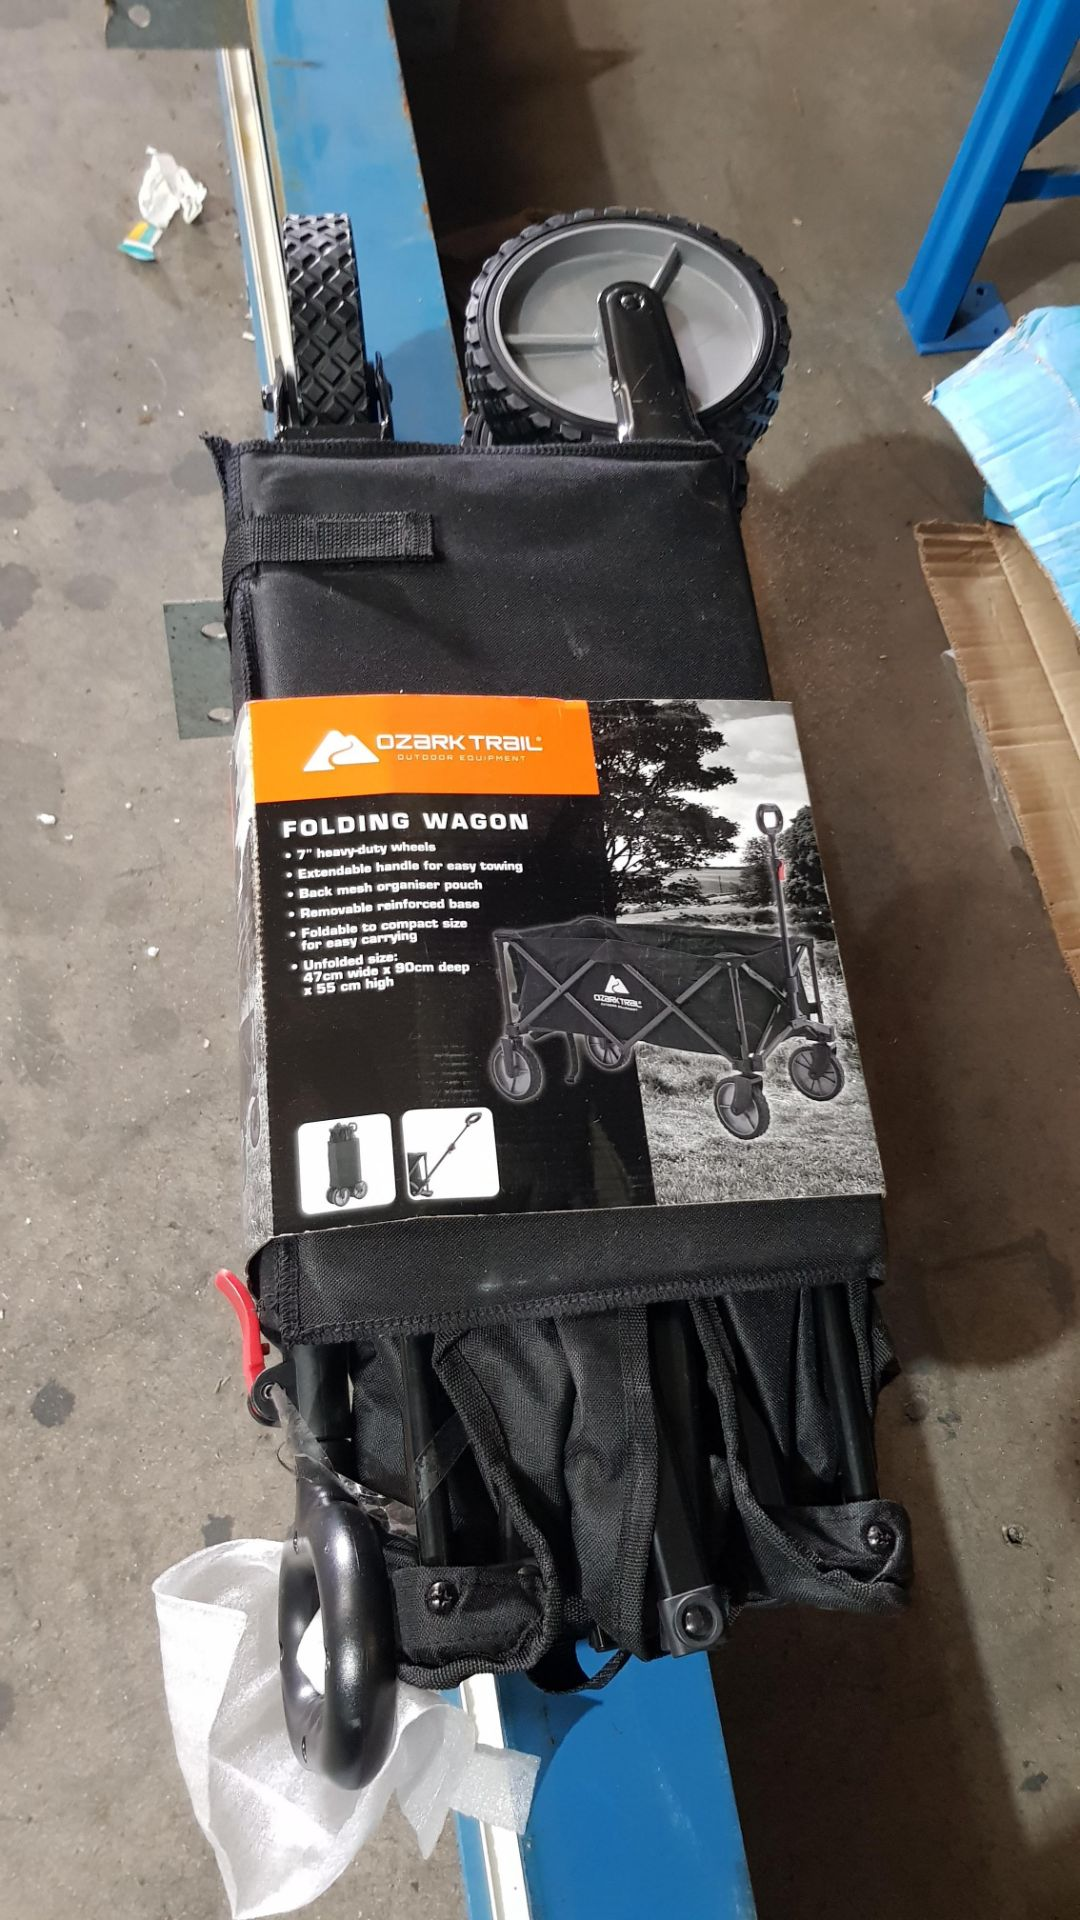 (3G) 7x Ozark Trail Items. 1x Queen Size Airbed. 2x Double Airbed. 2x Single Airbed (1x No Box). 1 - Image 9 of 10